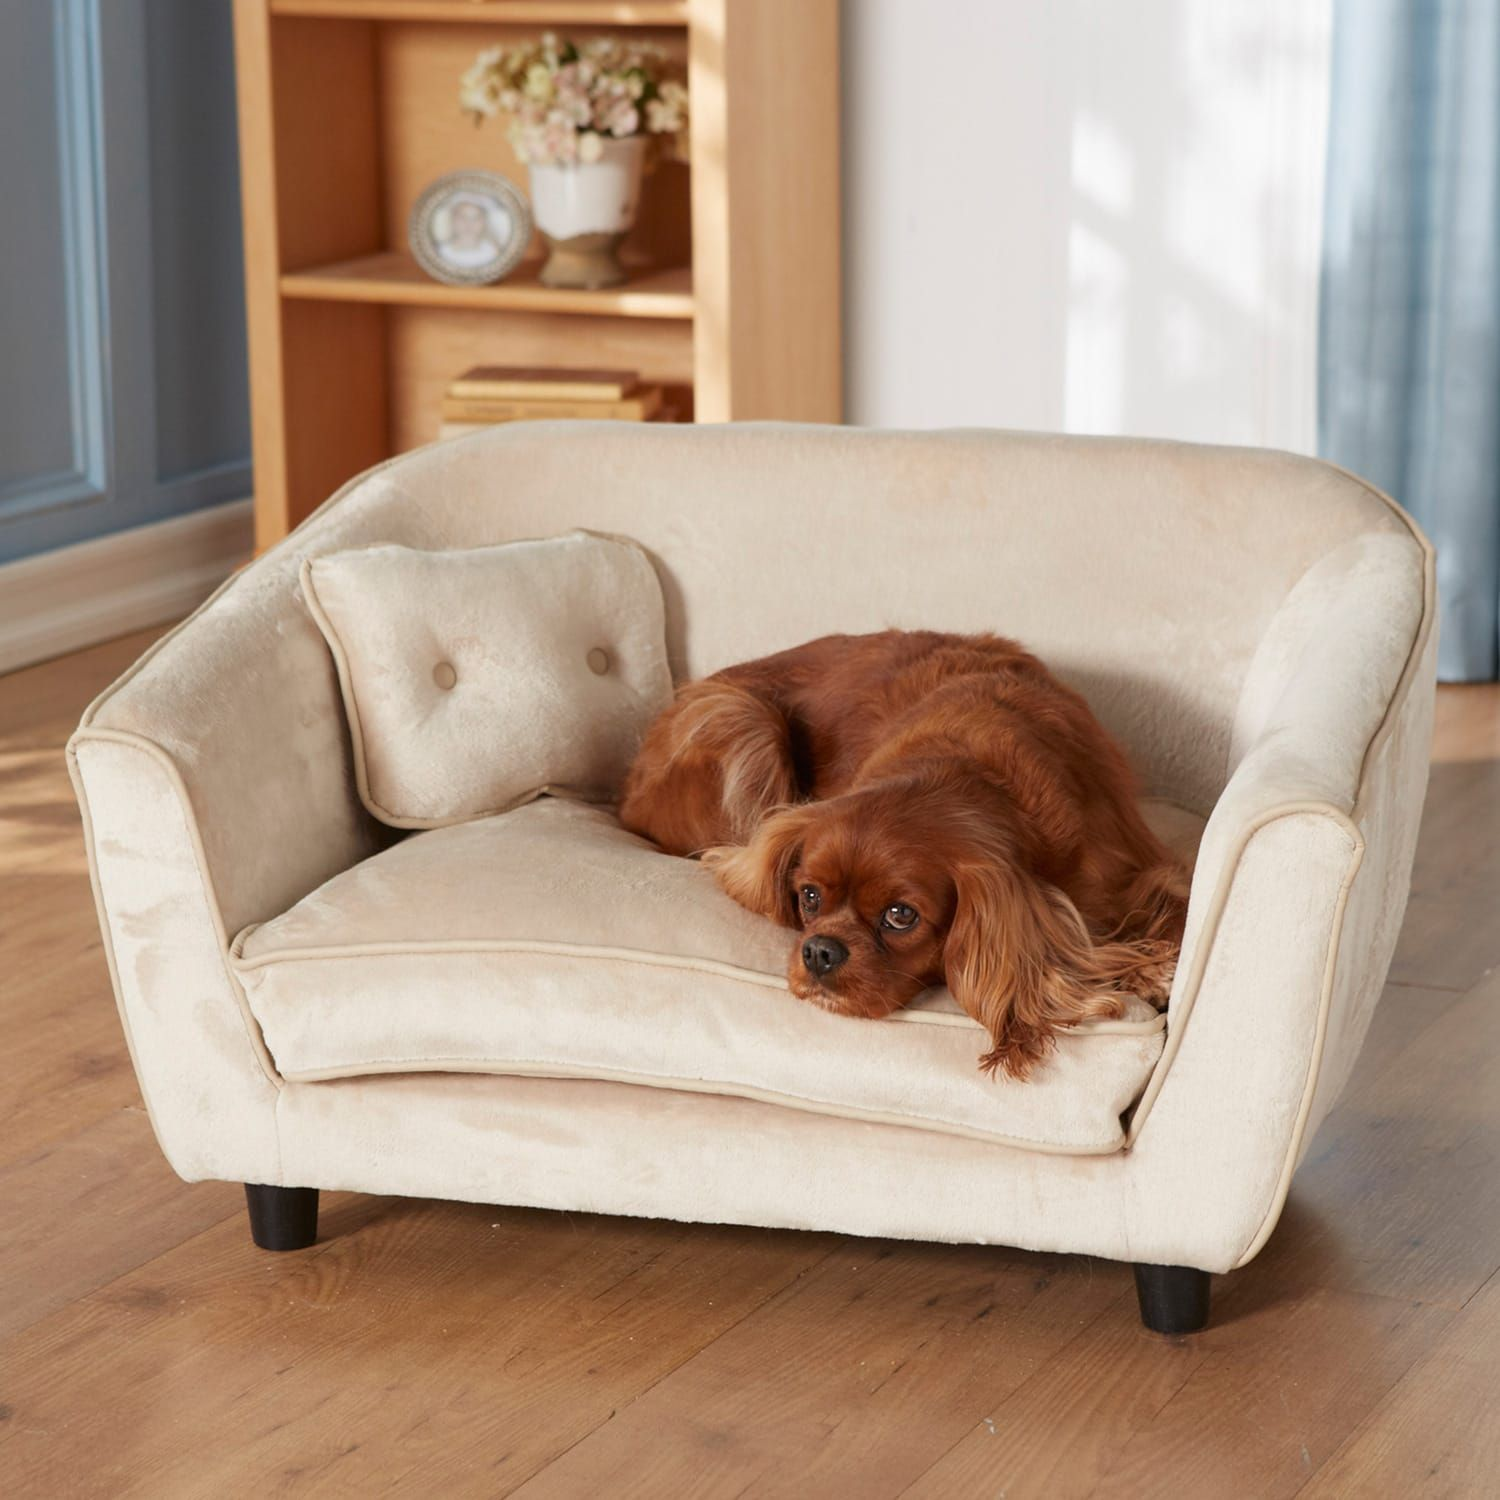 Enchanted Home Pet Ultra Plush Astro Sofa Dog Bed 32 5 L X 22 5 W In 2020 Dog Sofa Bed Pet Furniture Dog Bed